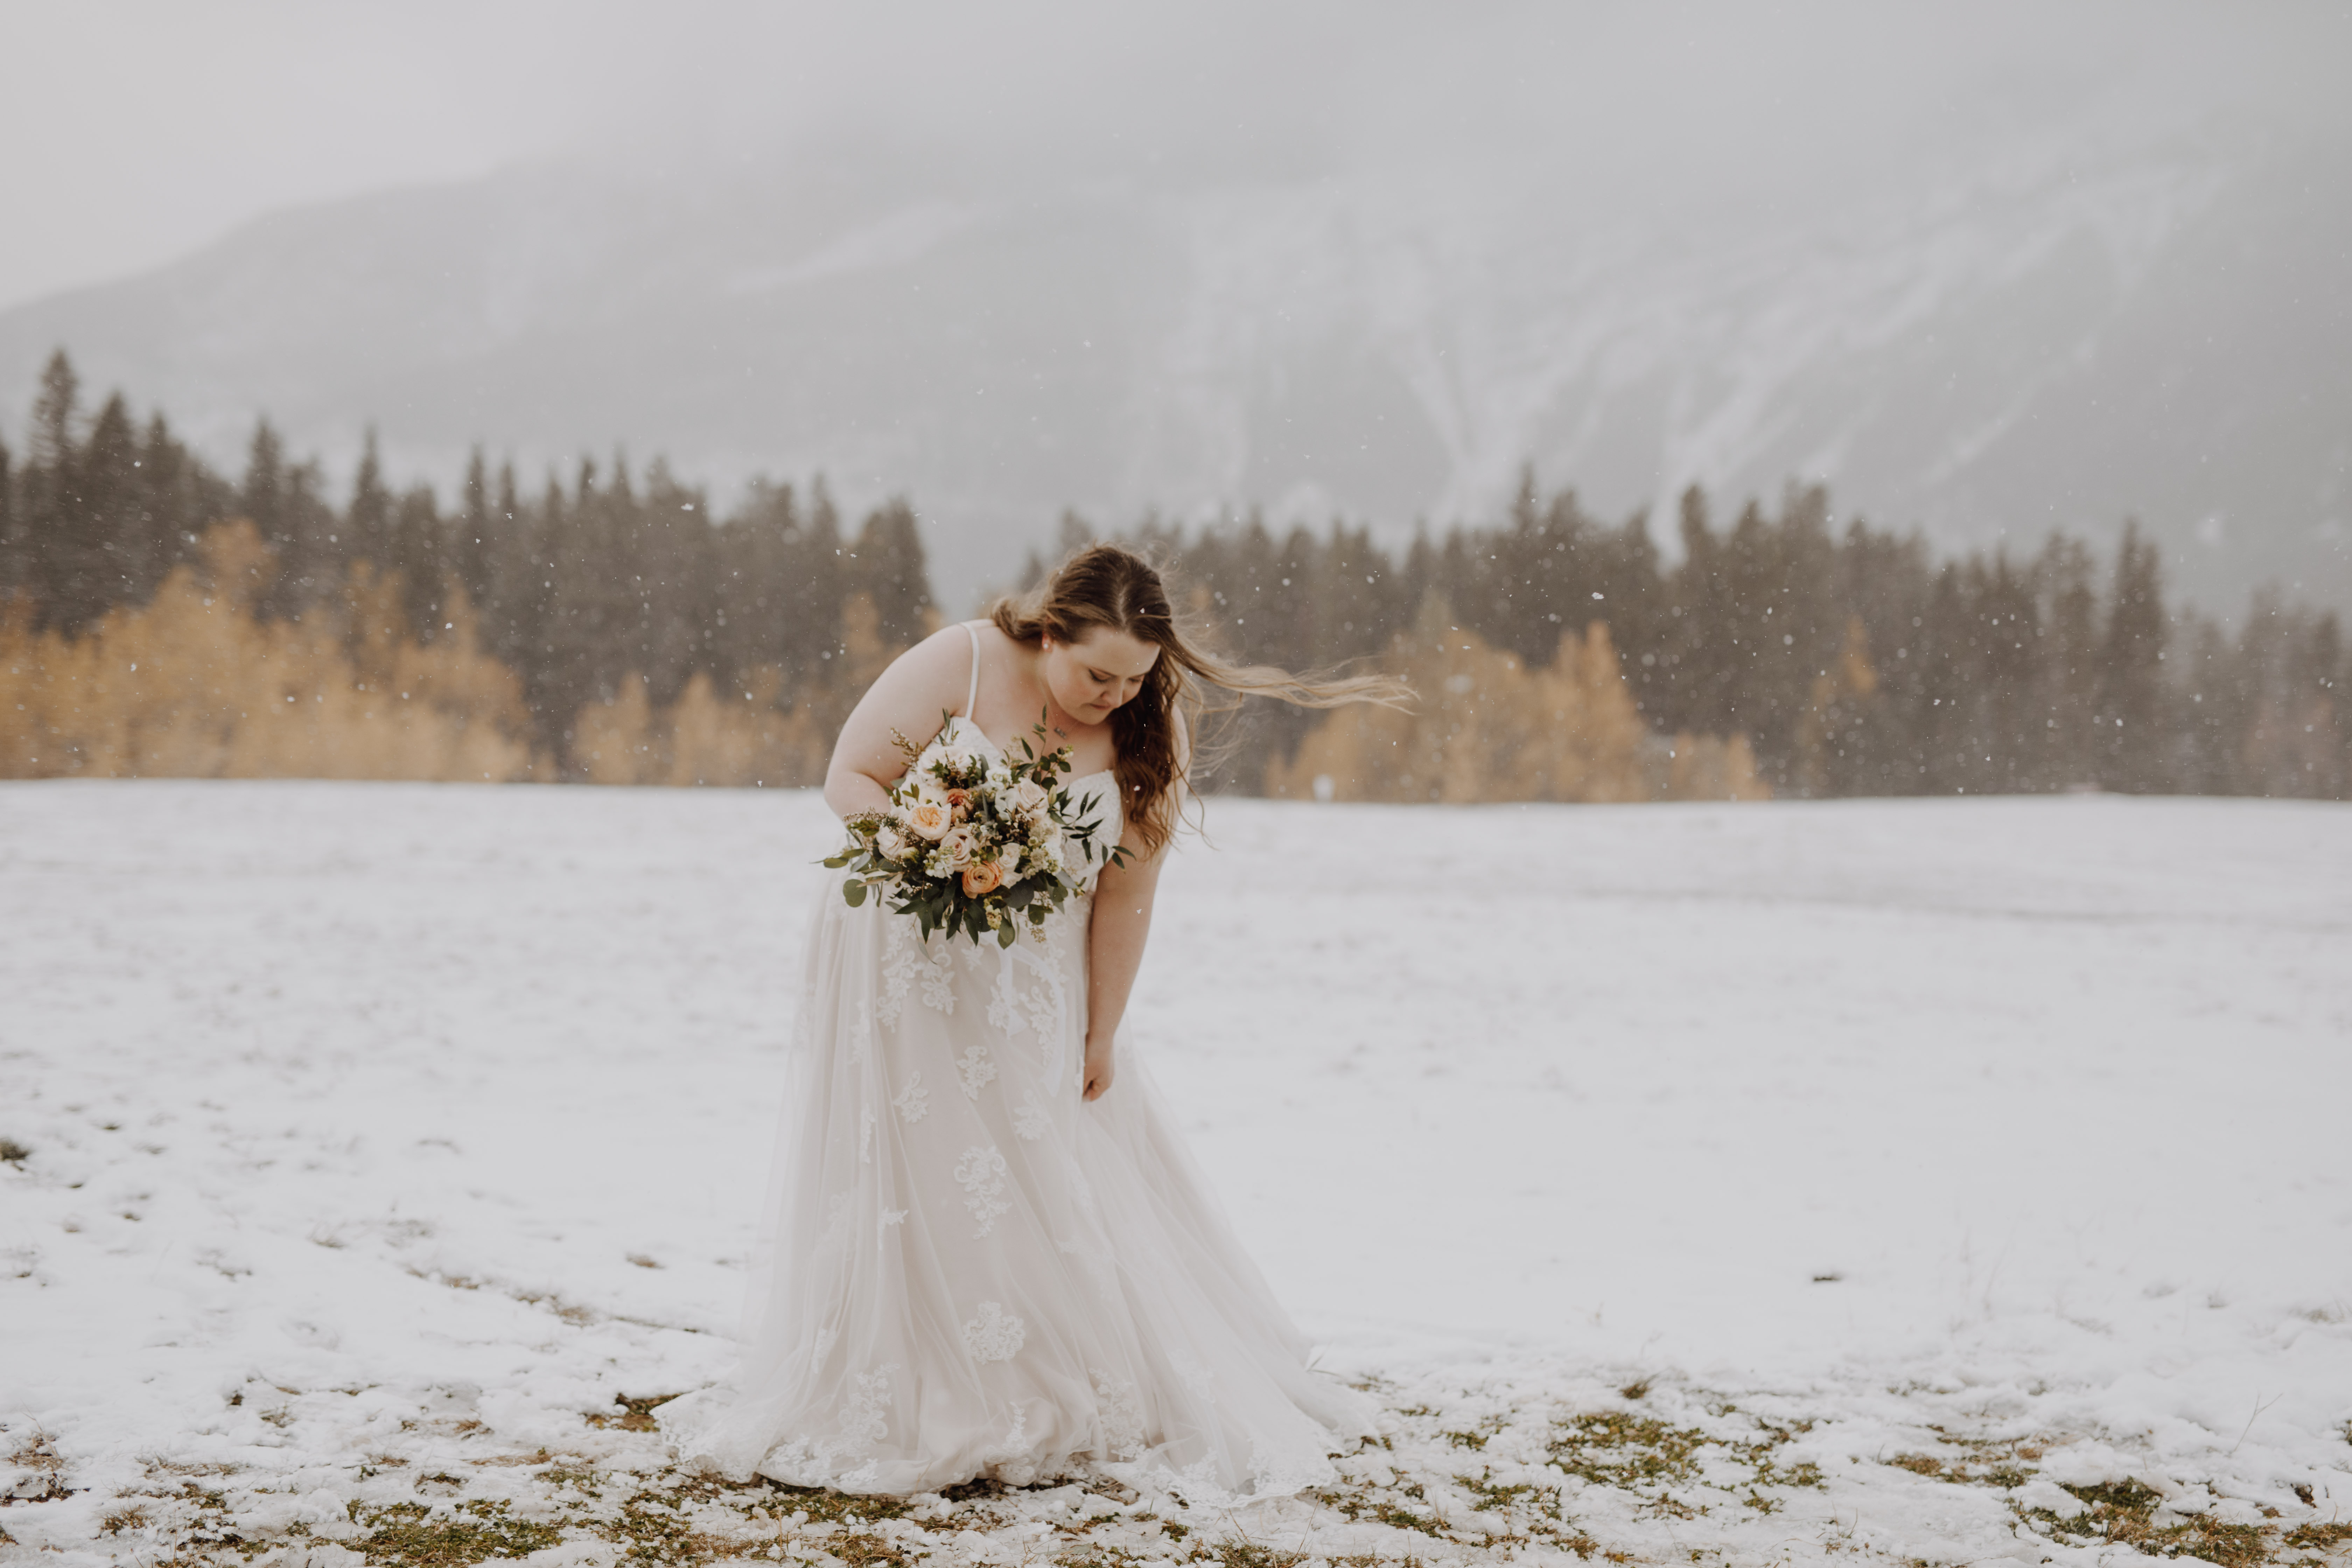 Banff Wedding - winter wedding